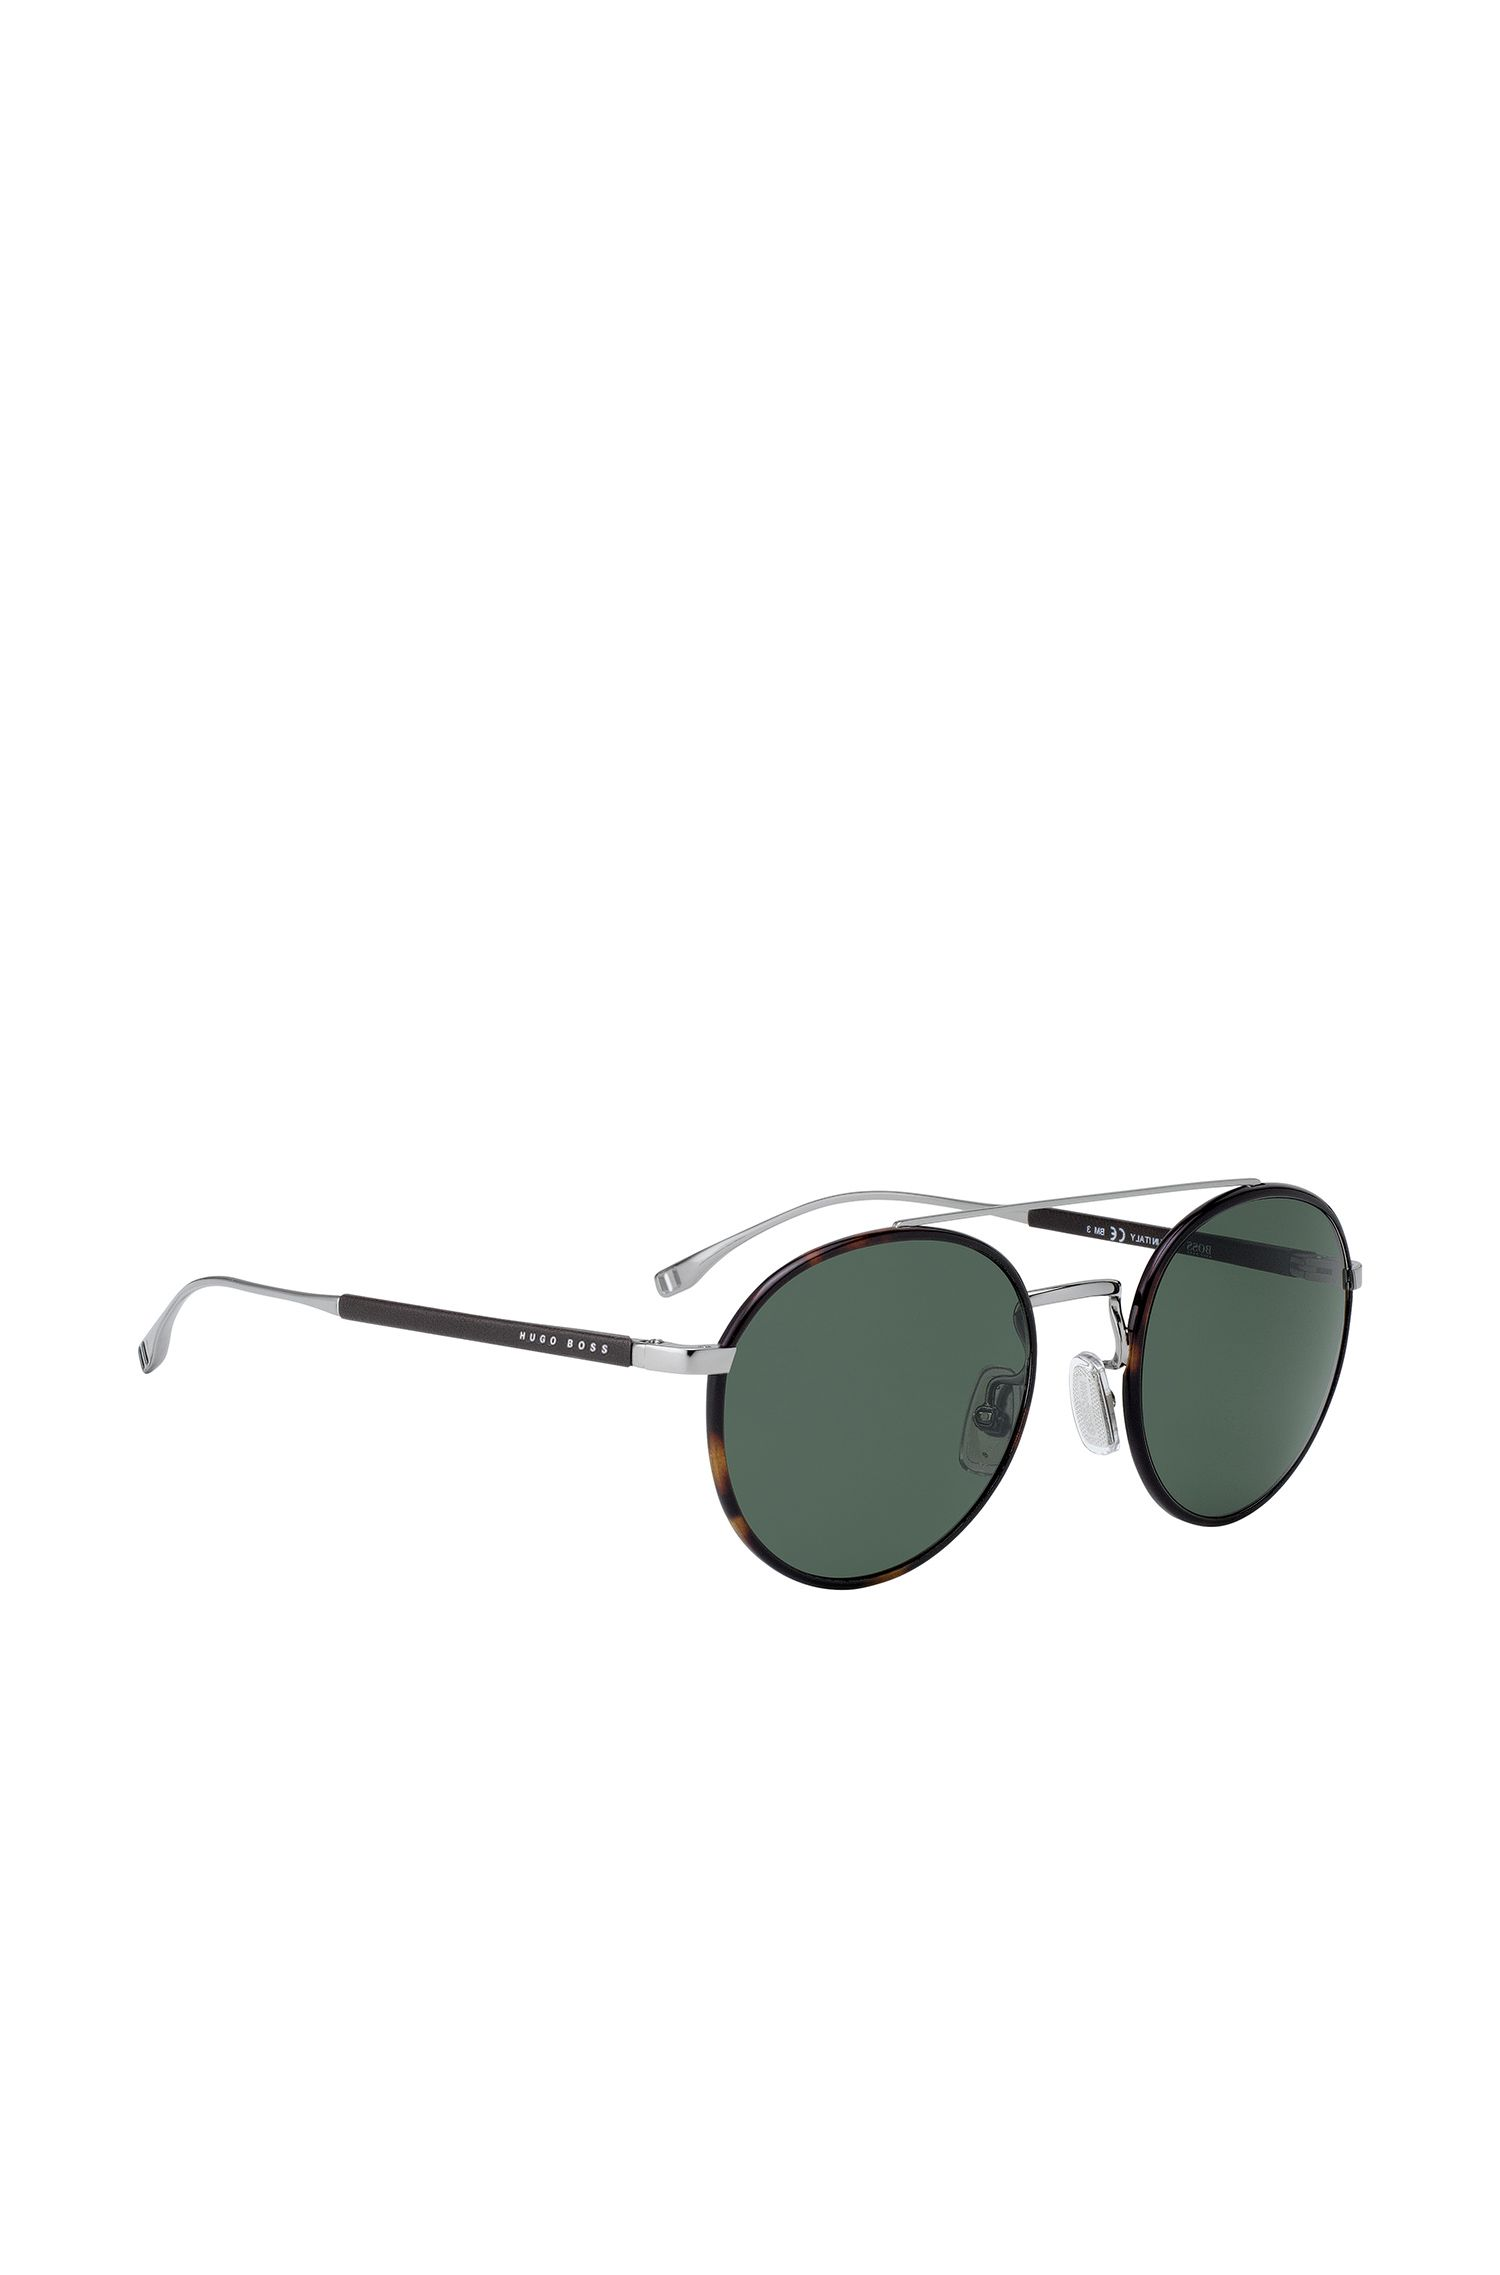 'BOSS 0886S' | Green Lens Round Leather Wrapped Sunglasses